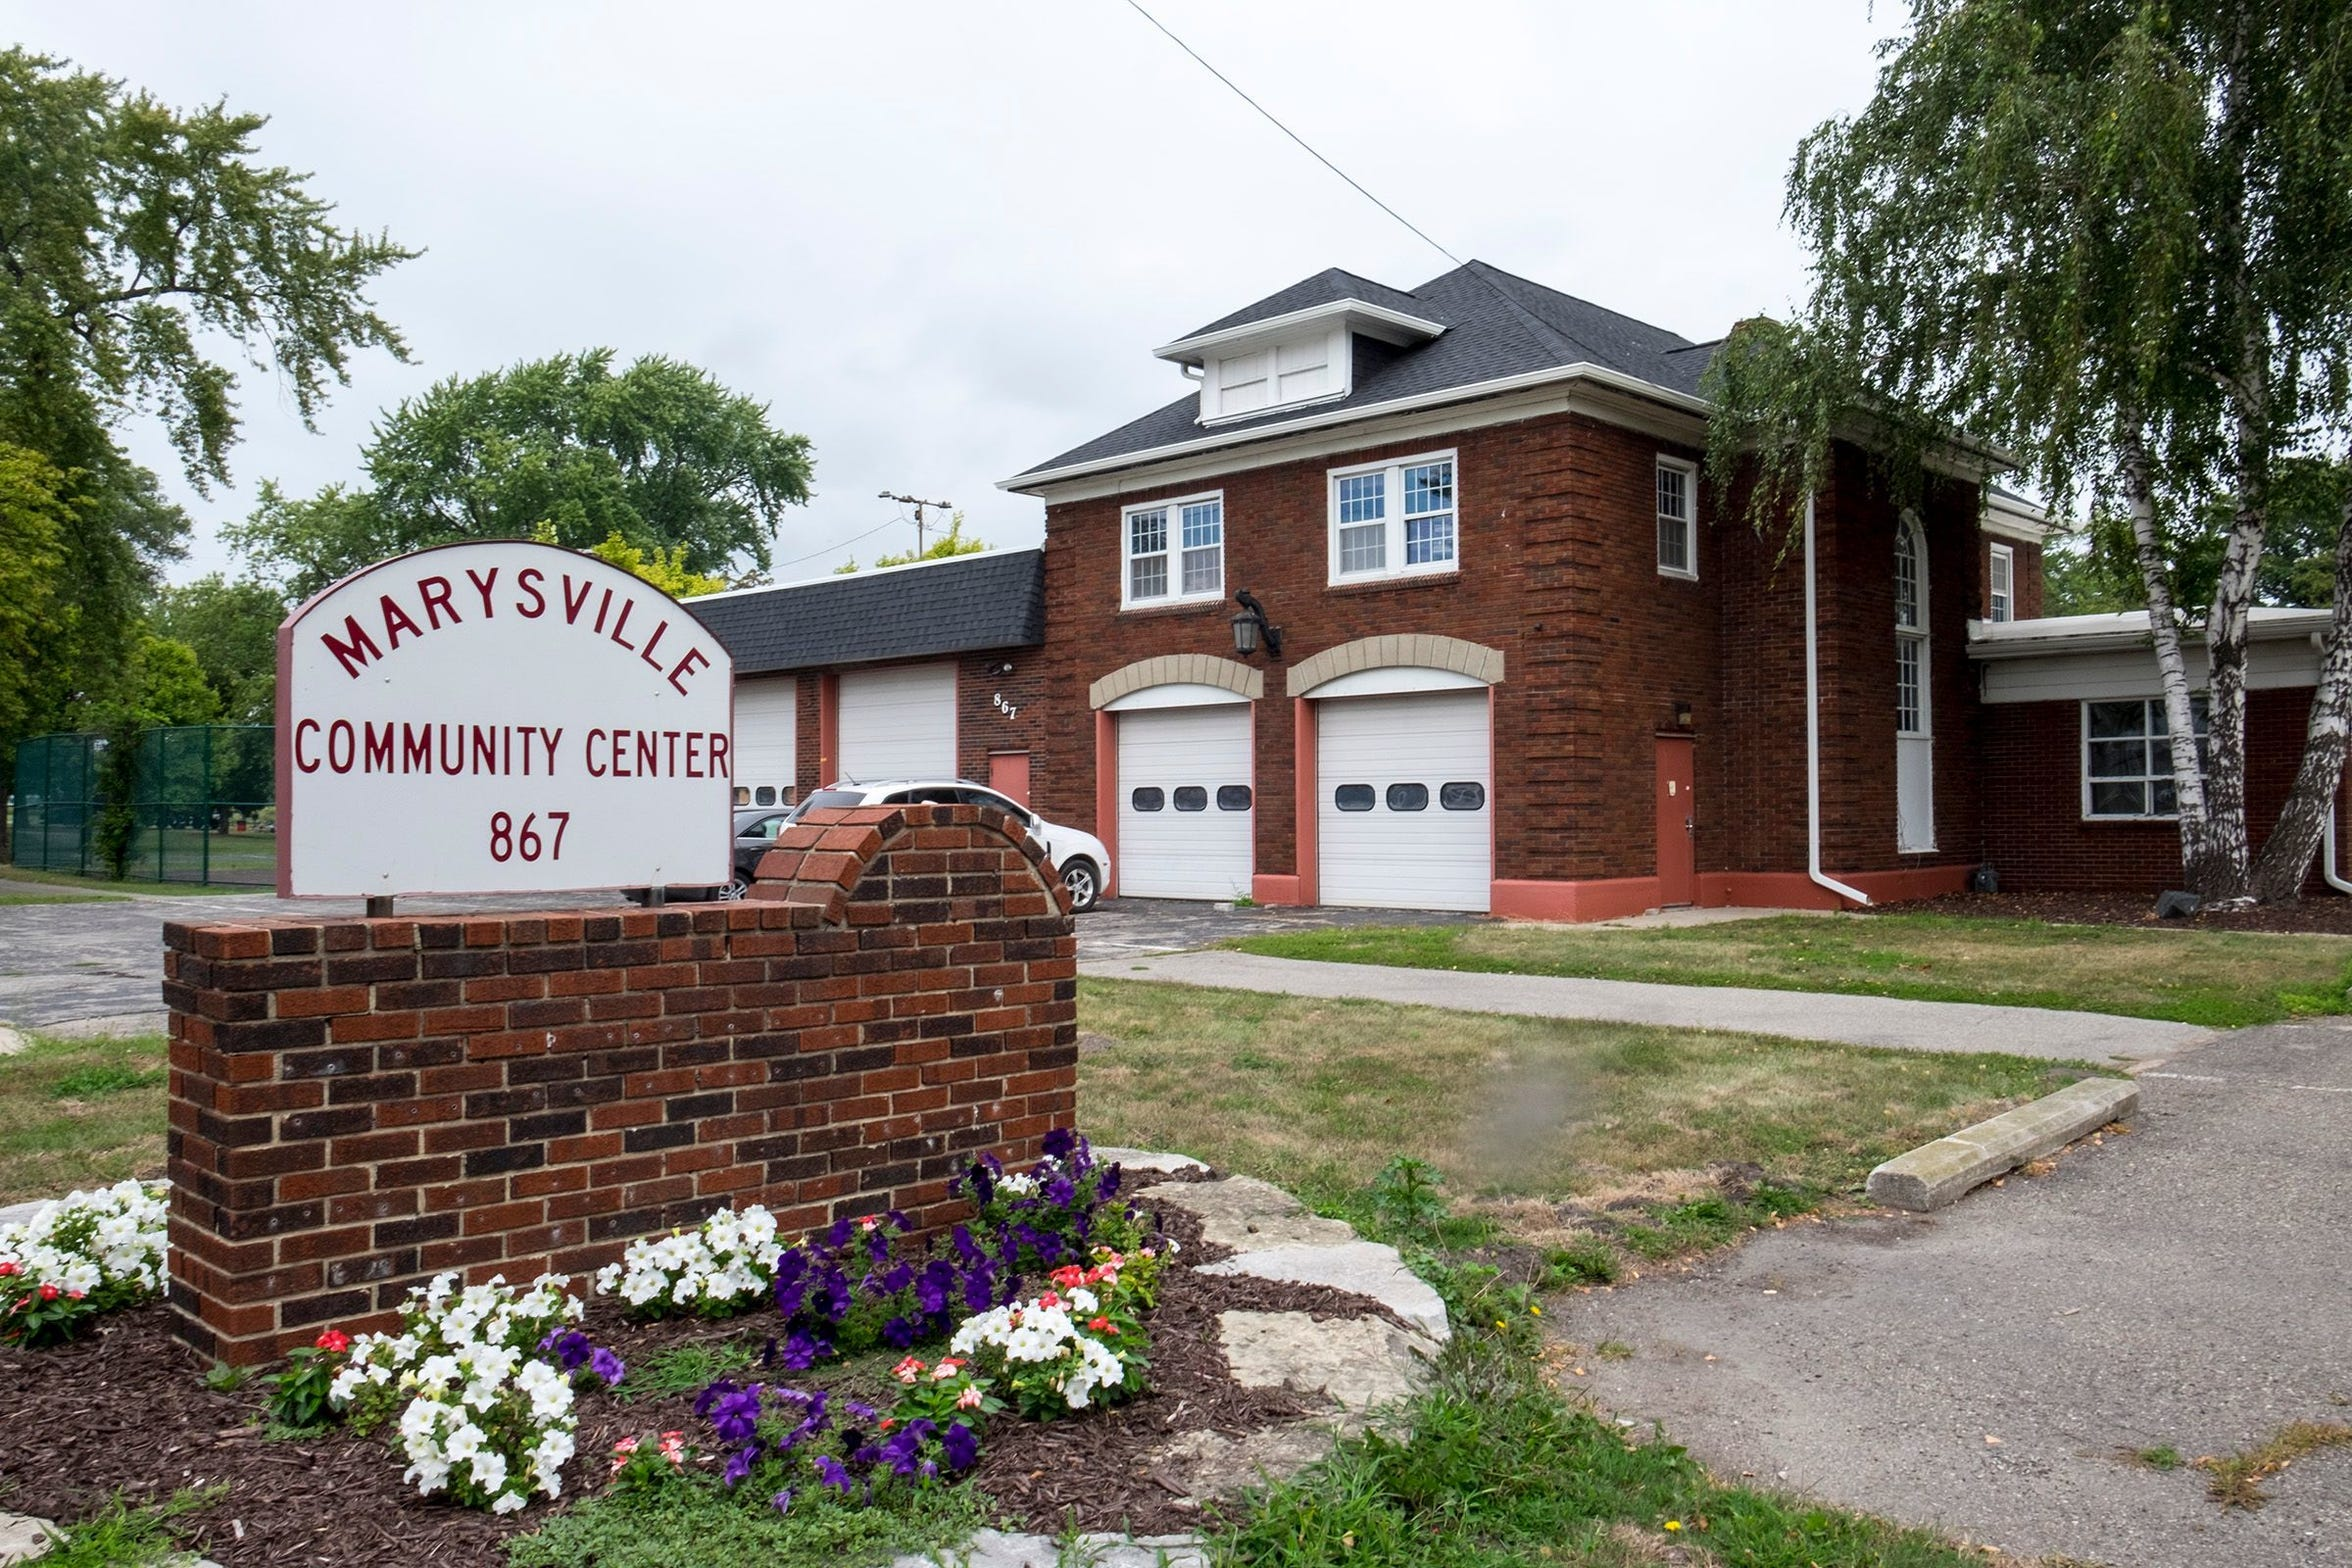 The community center, in 2017 before its major renovations, is now headquarters for Marysville's recreation department.